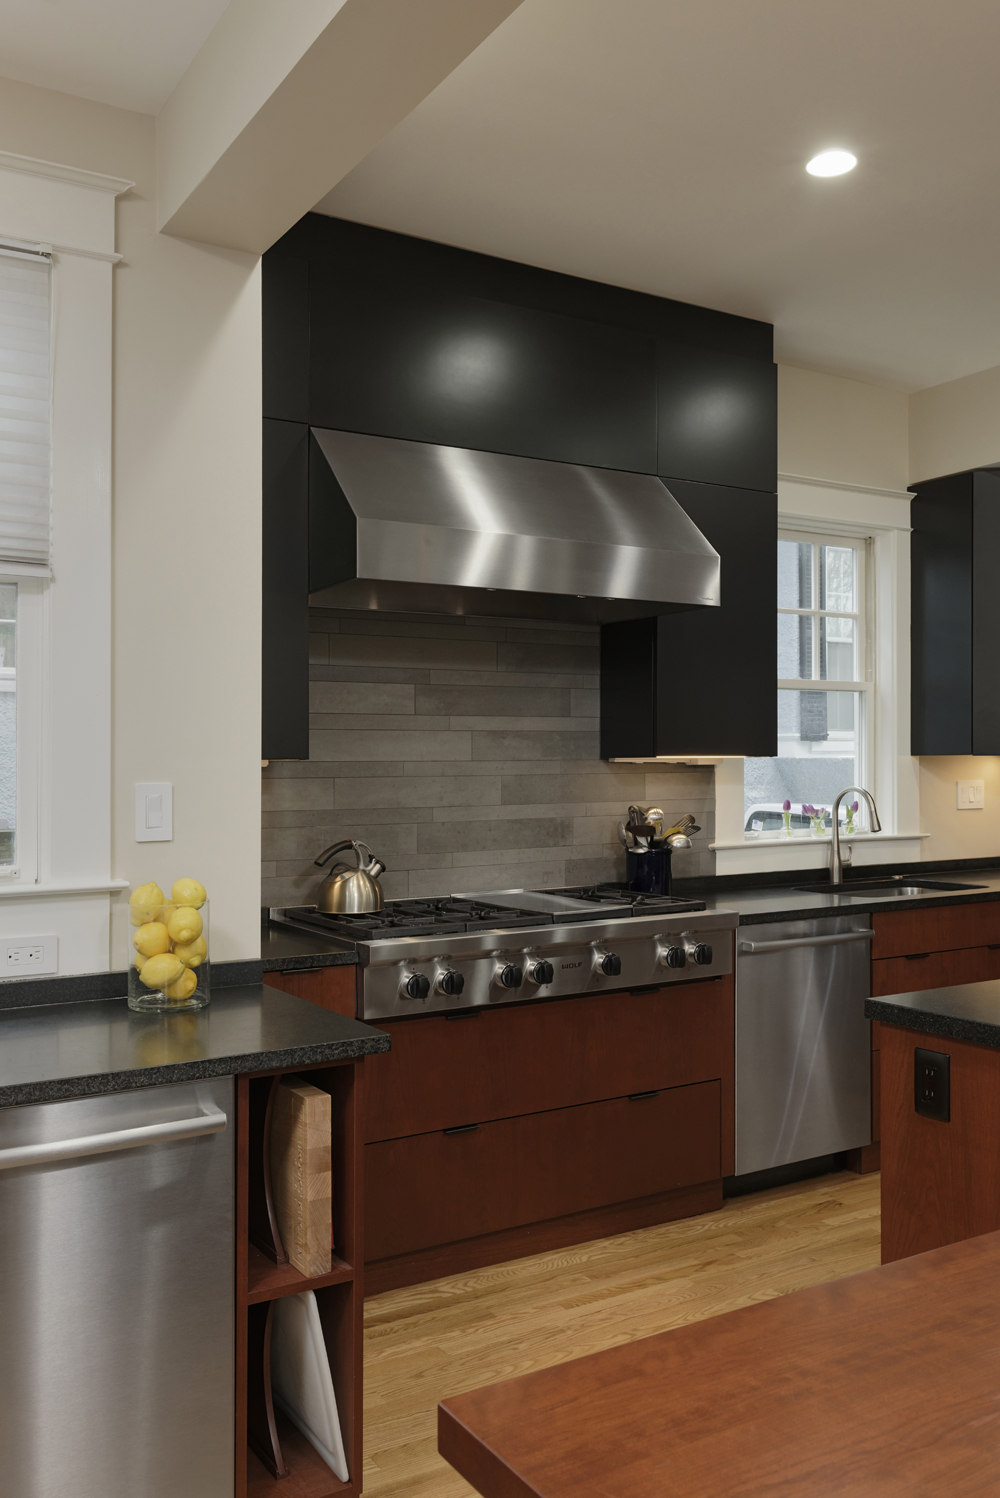 Cleveland park dc kosher kitchen renovation bowa Kitchen design remodel dc